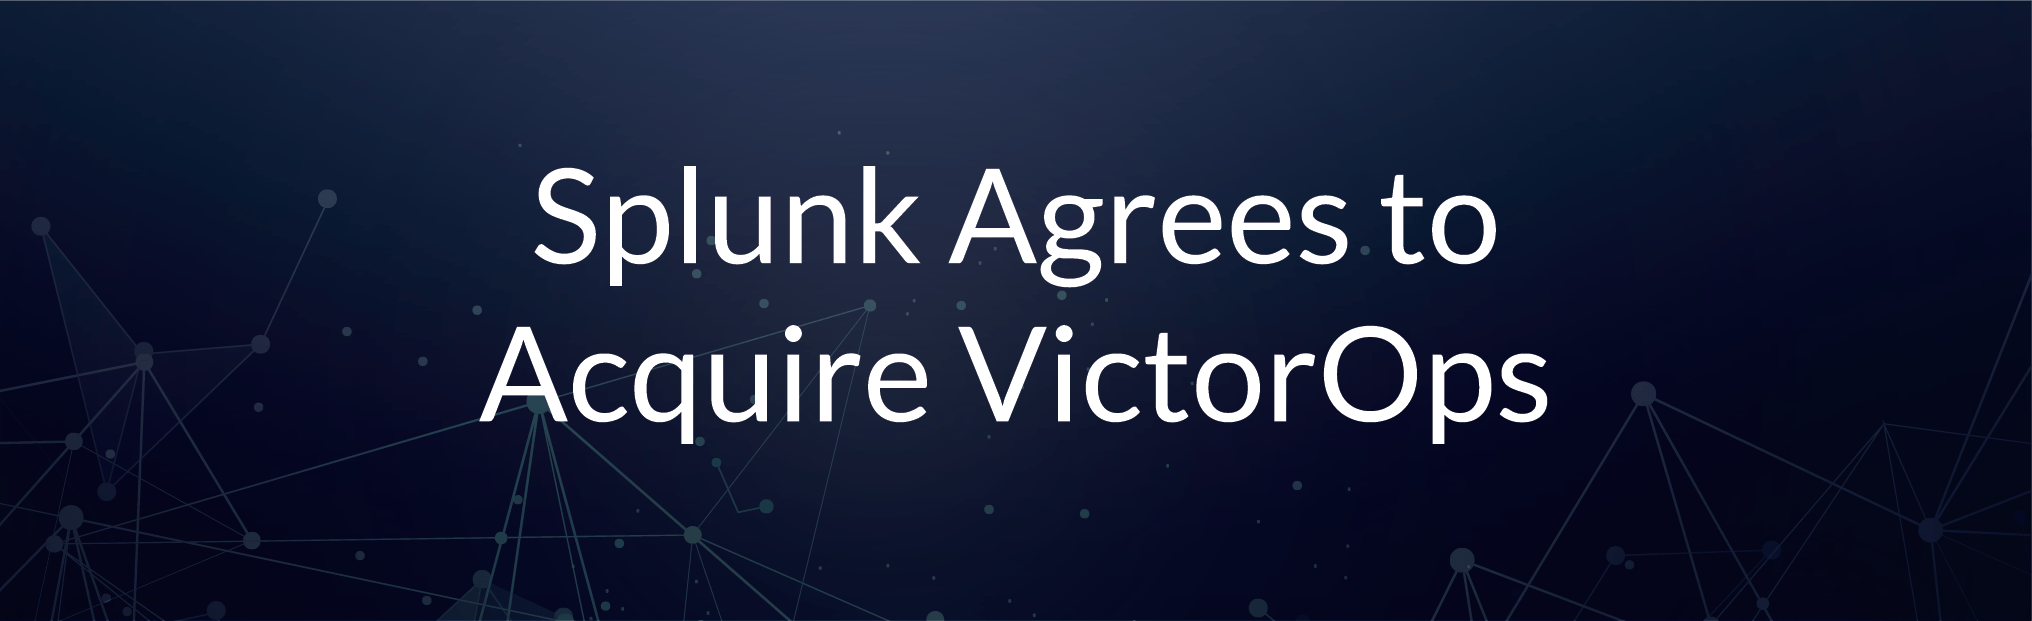 Splunk Agrees to Acquire VictorOps